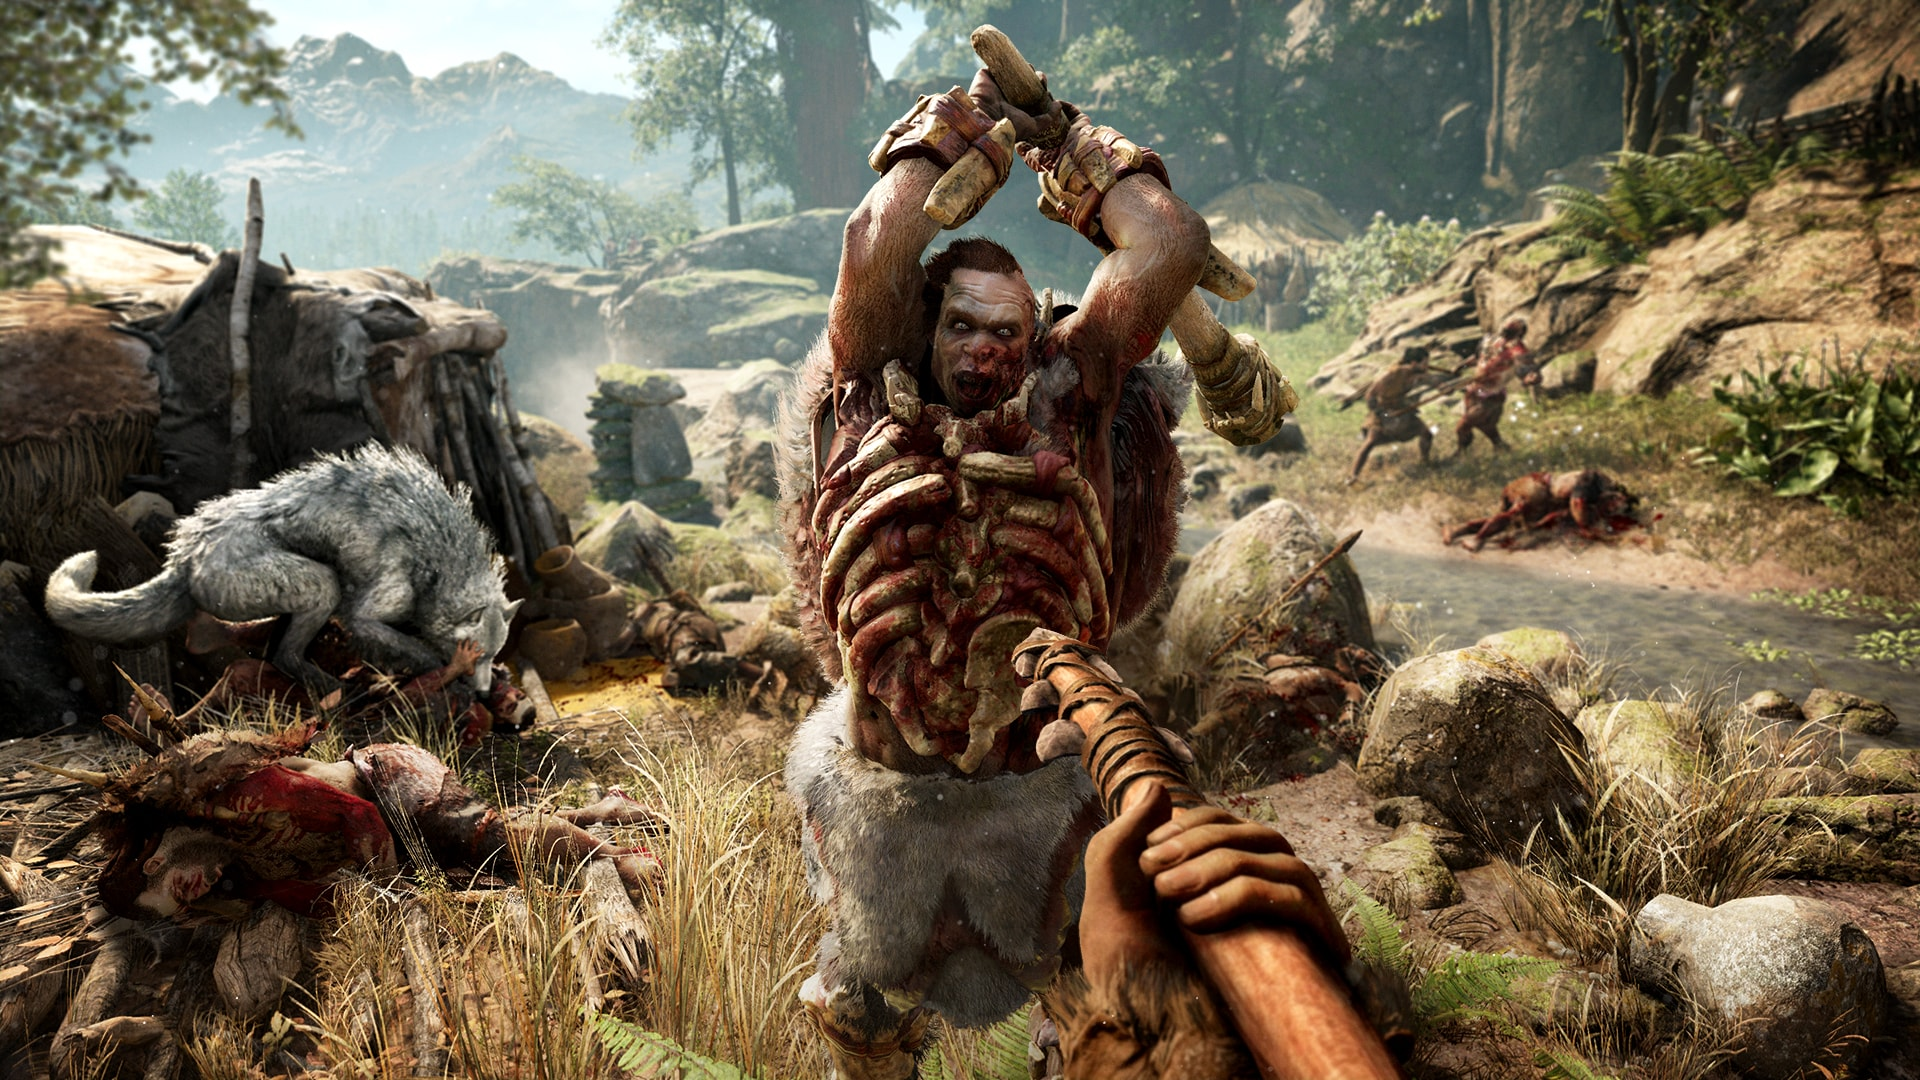 Far Cry Primal Hd Wallpapers 7wallpapers Net